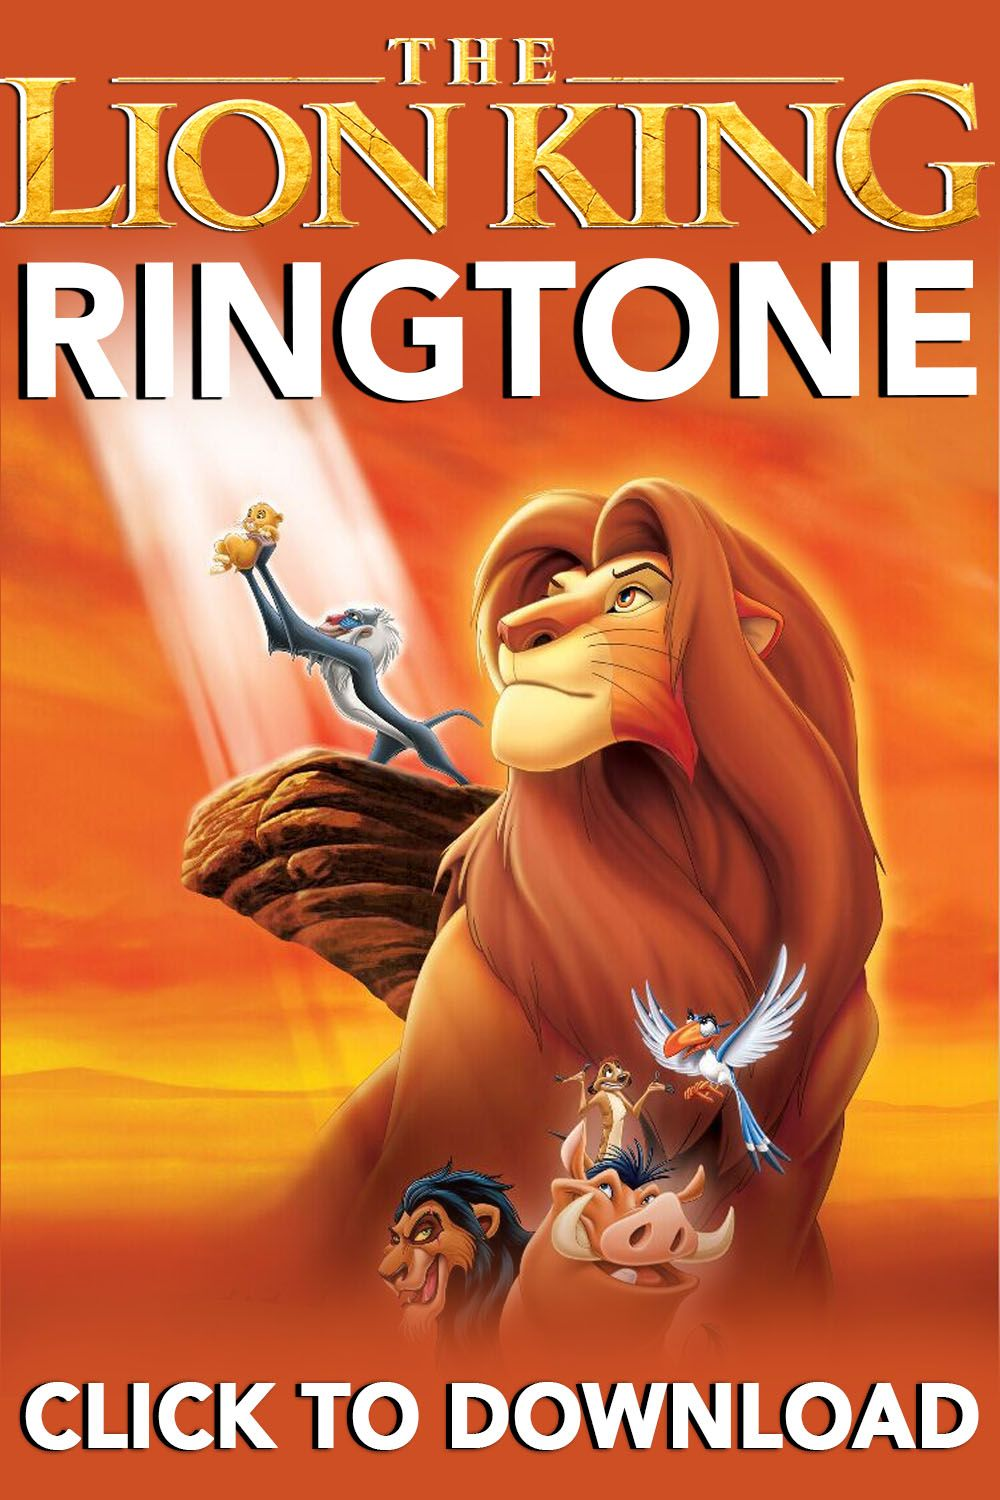 The Lion King Ringtone For Your Iphone In 2020 Lion King Ringtone Download Circle Of Life